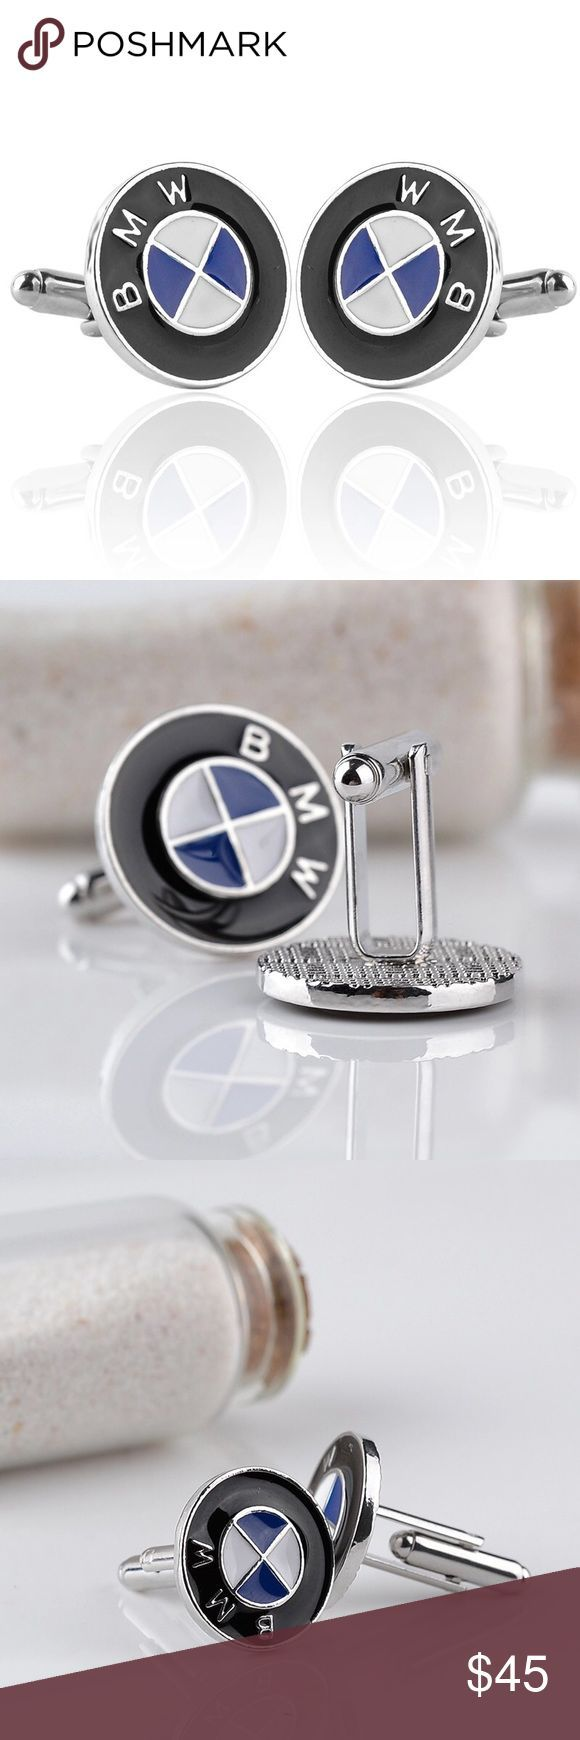 Cool Cars luxury 2017: Brand Design Car Cufflinks For Men New Luxury Car Men's Shirt Cufflinks Blue...  My Posh Closet Check more at http://autoboard.pro/2017/2017/05/08/cars-luxury-2017-brand-design-car-cufflinks-for-men-new-luxury-car-mens-shirt-cufflinks-blue-my-posh-closet/